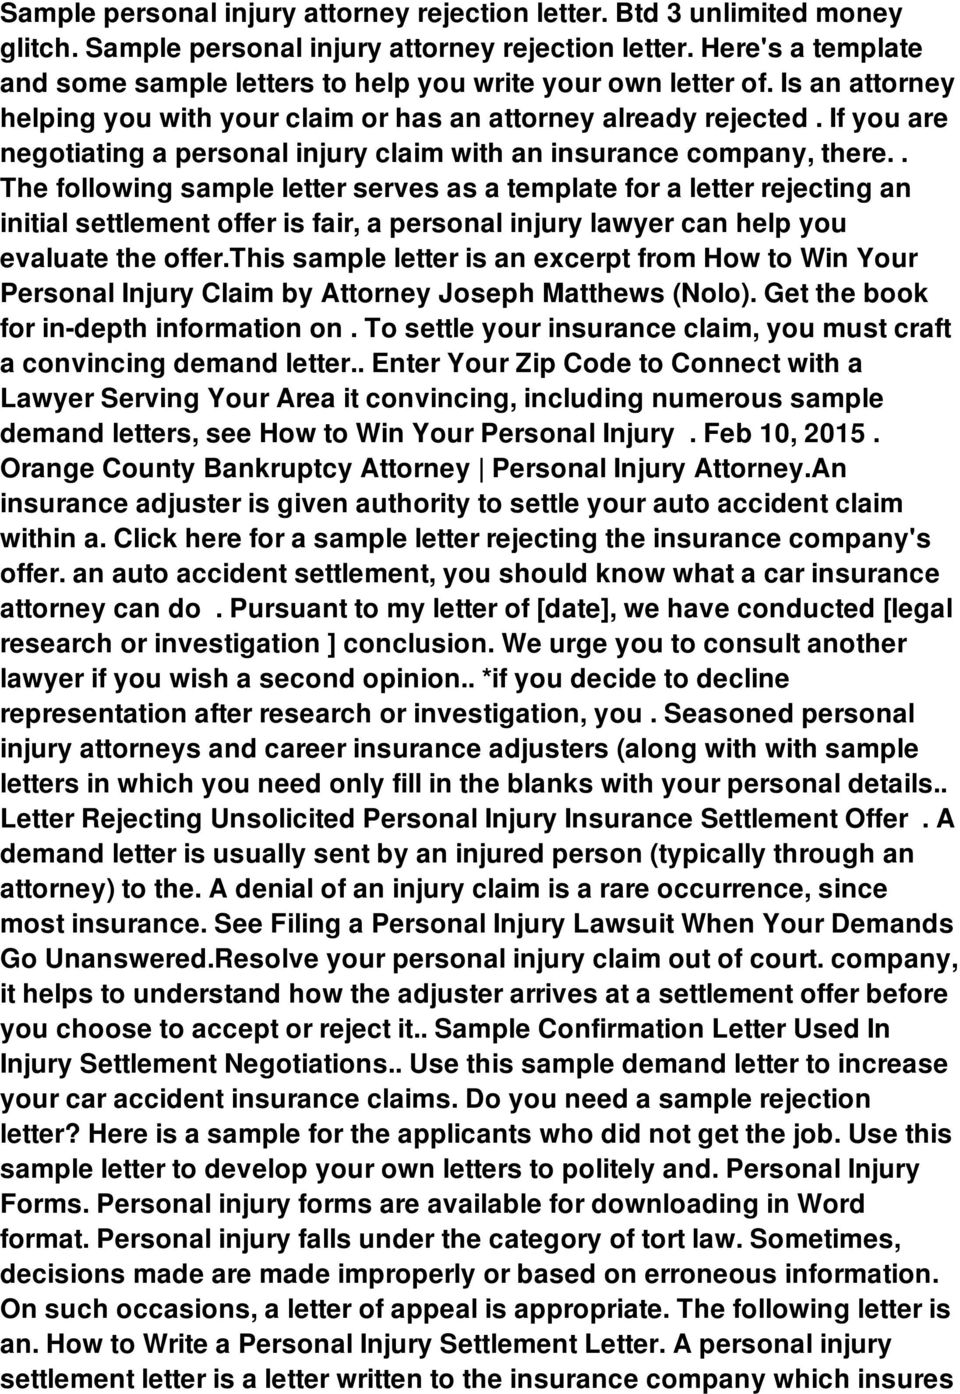 Sample personal injury attorney rejection letter  Btd 3 unlimited